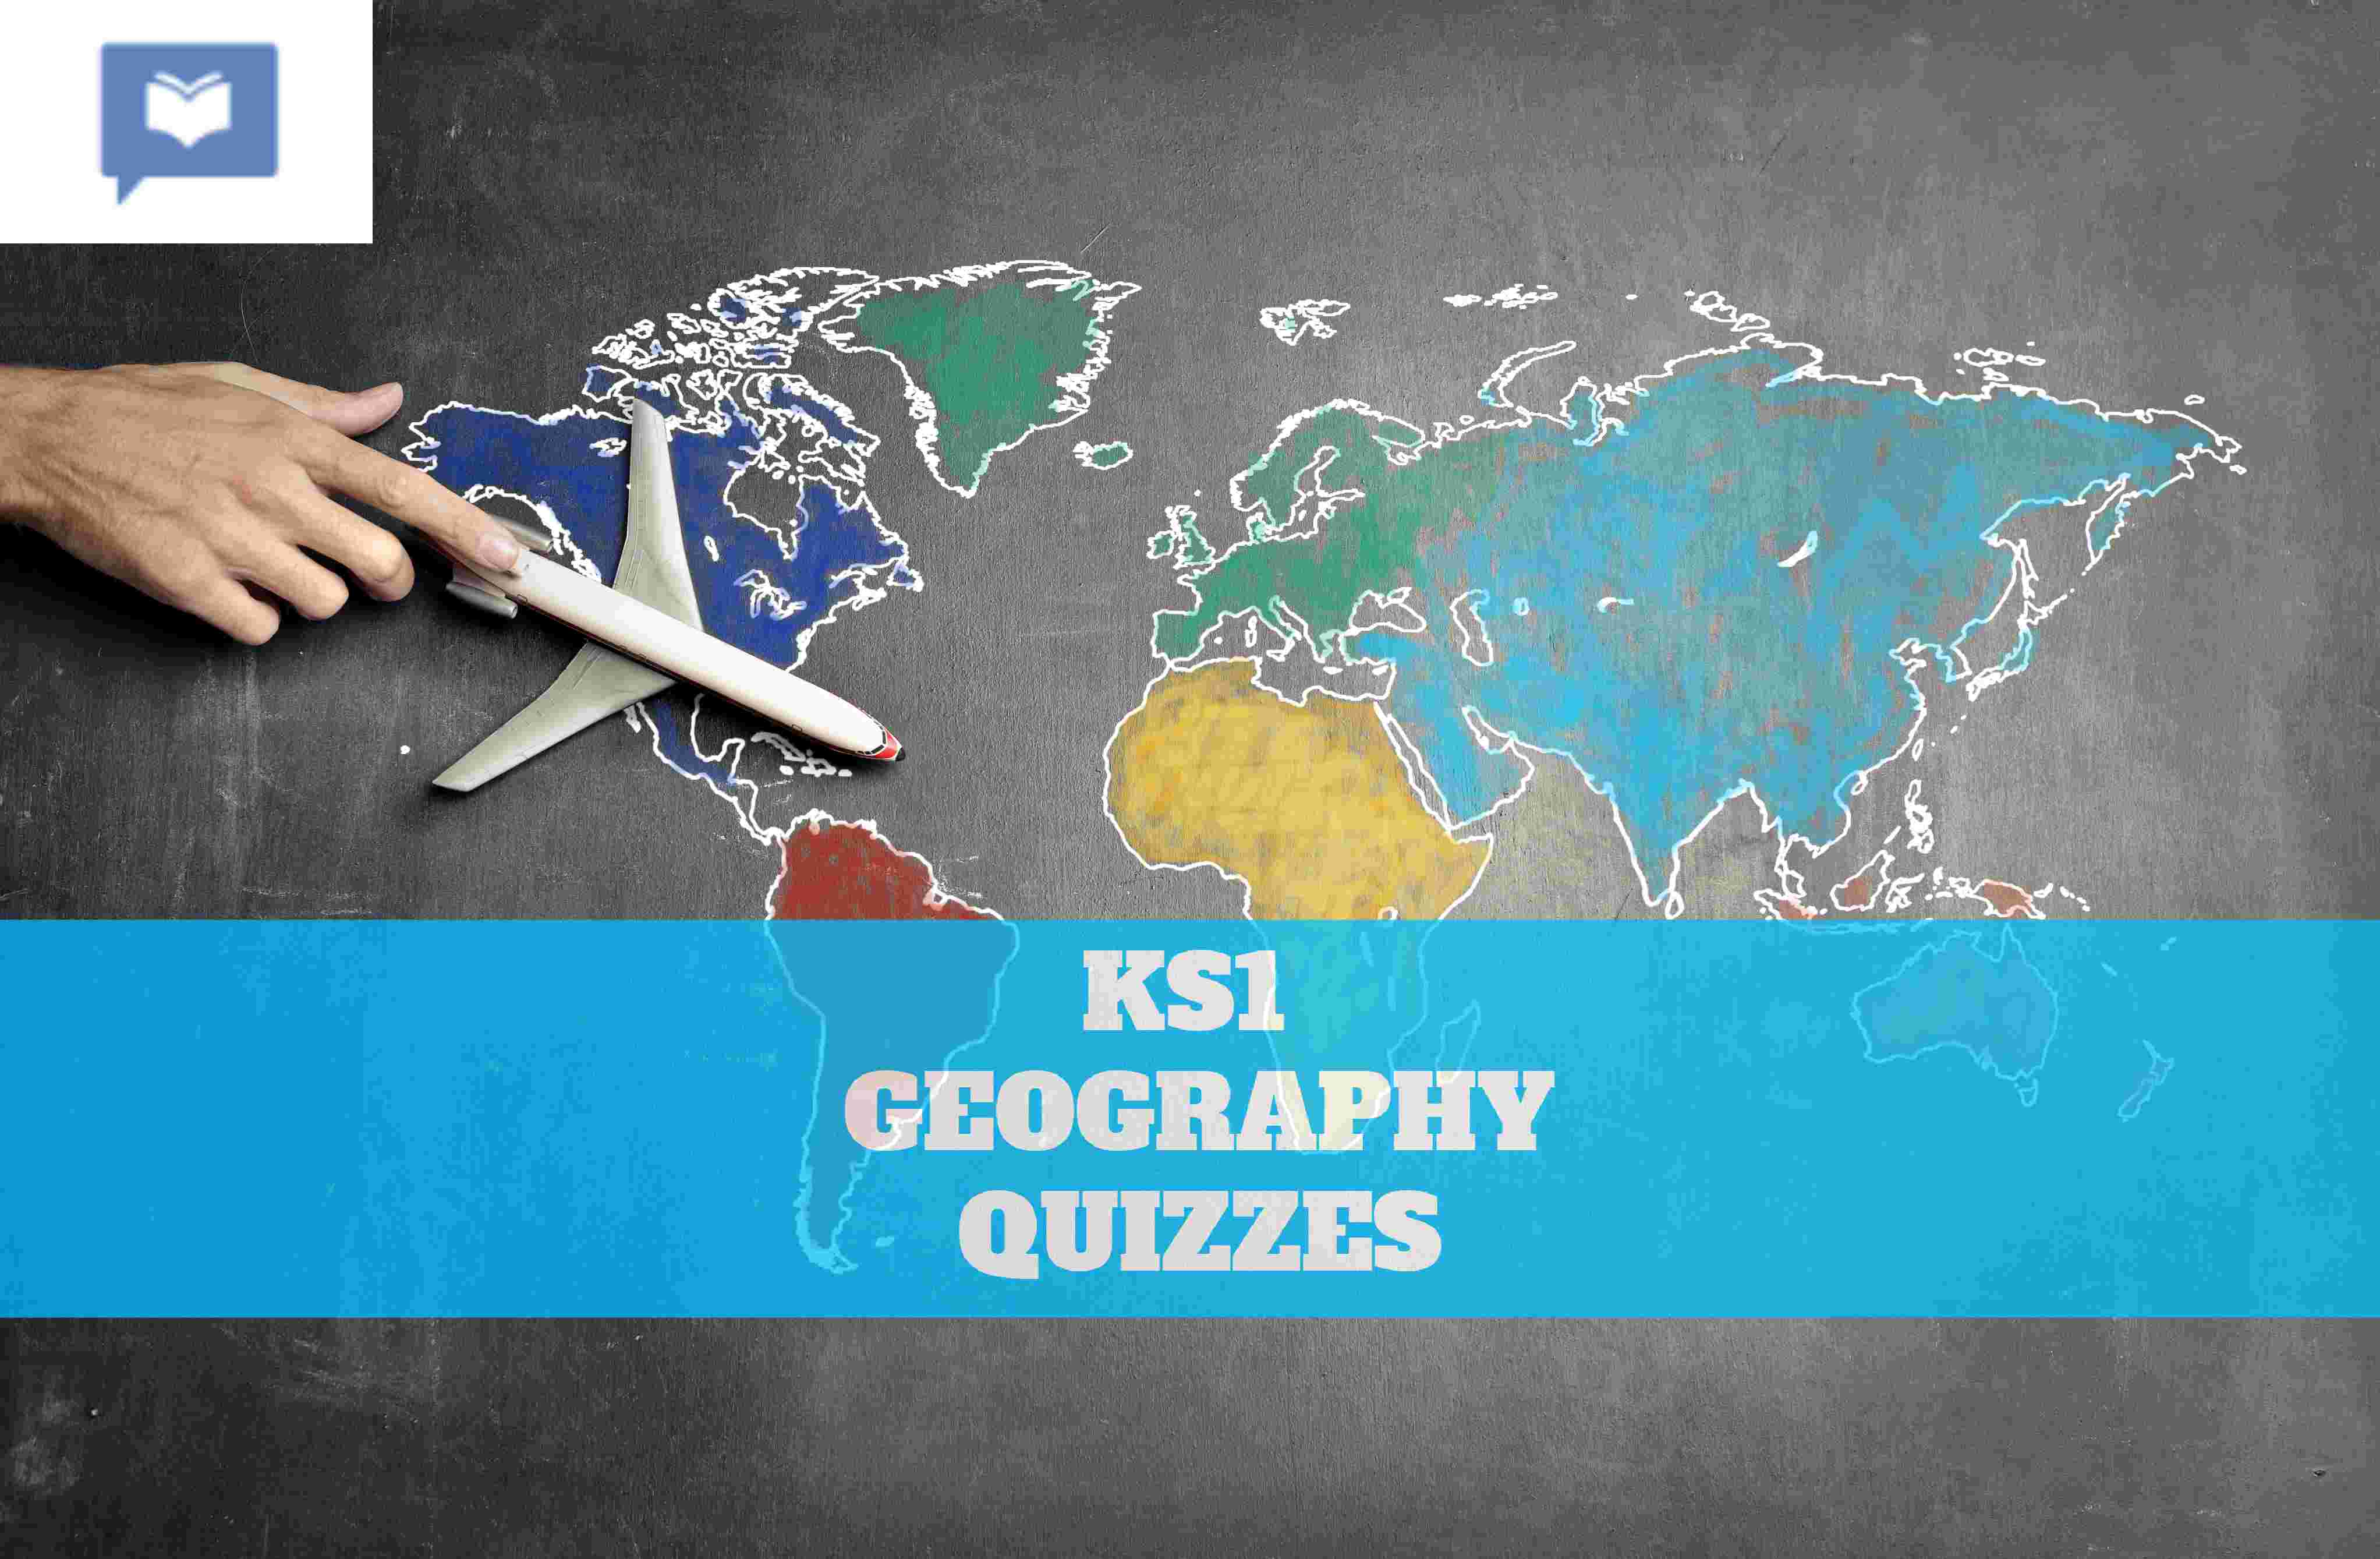 KS1 Geography Quizzes